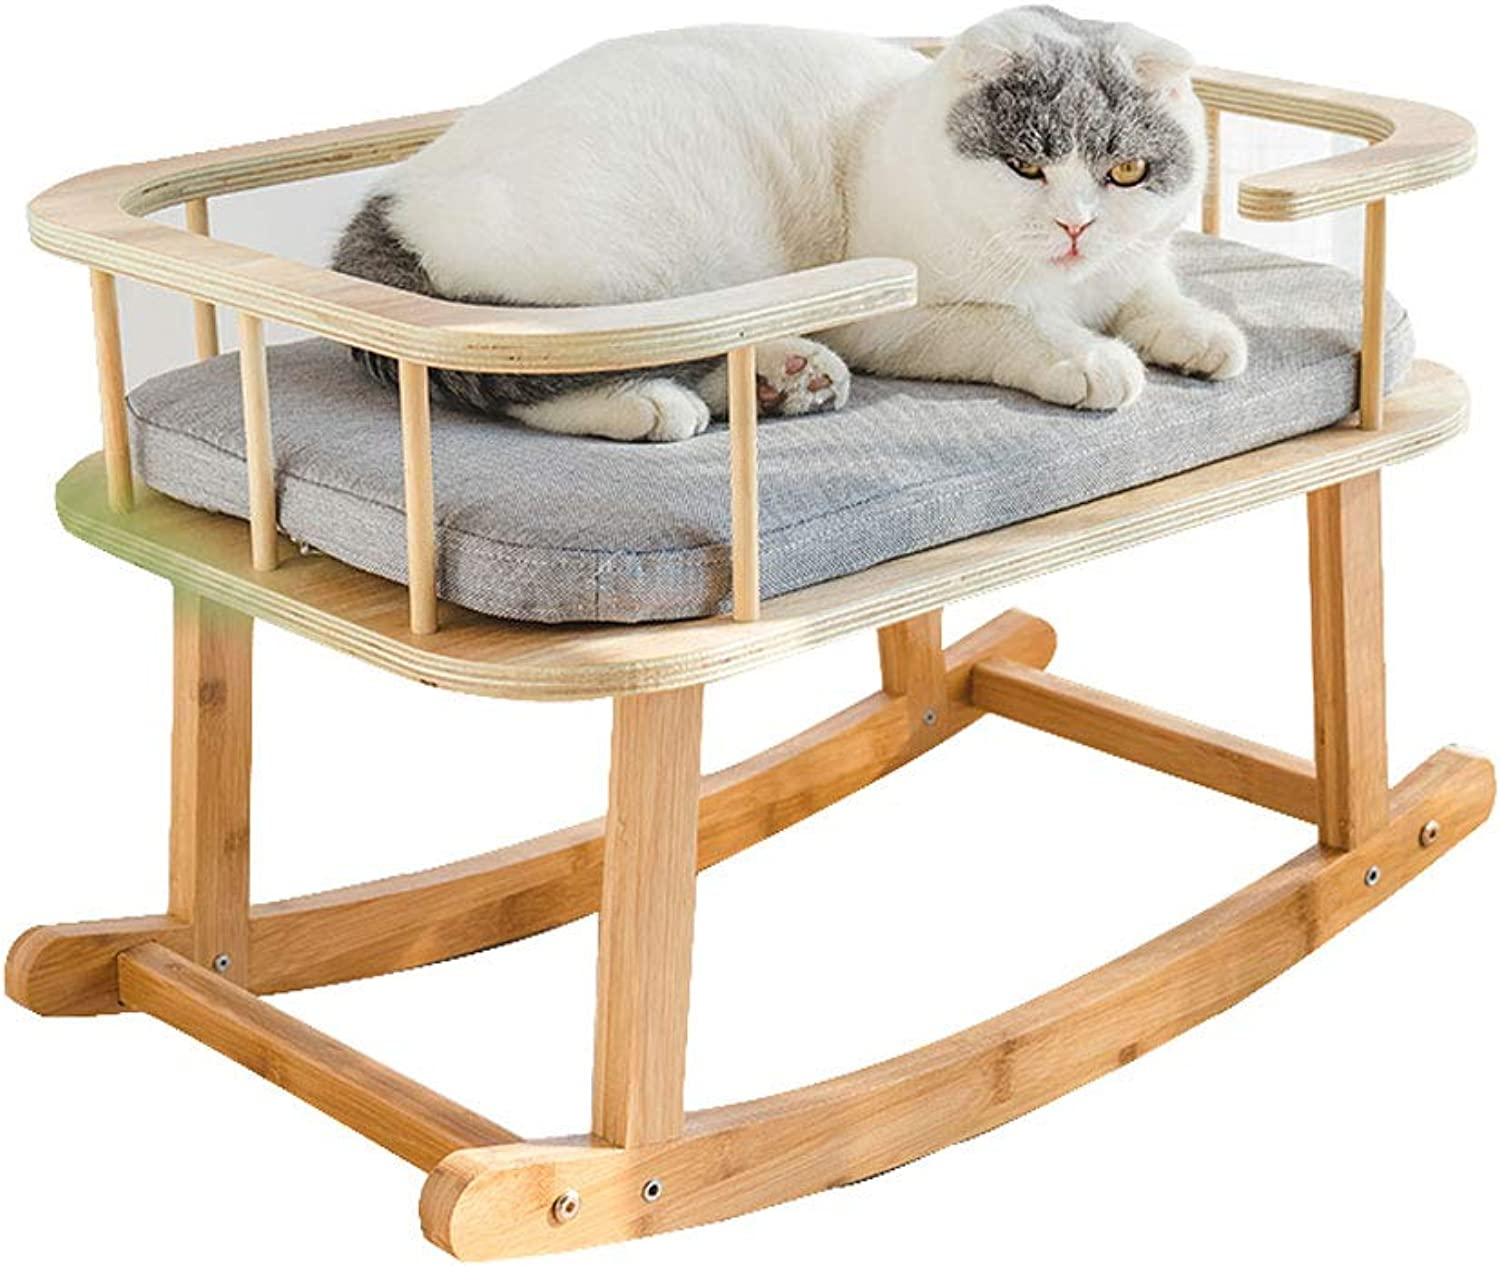 LiRongPing Solid wood rocking pet bed, four seasons universal sleep pet furniture, small and medium cats and dogs available, 64 cm long